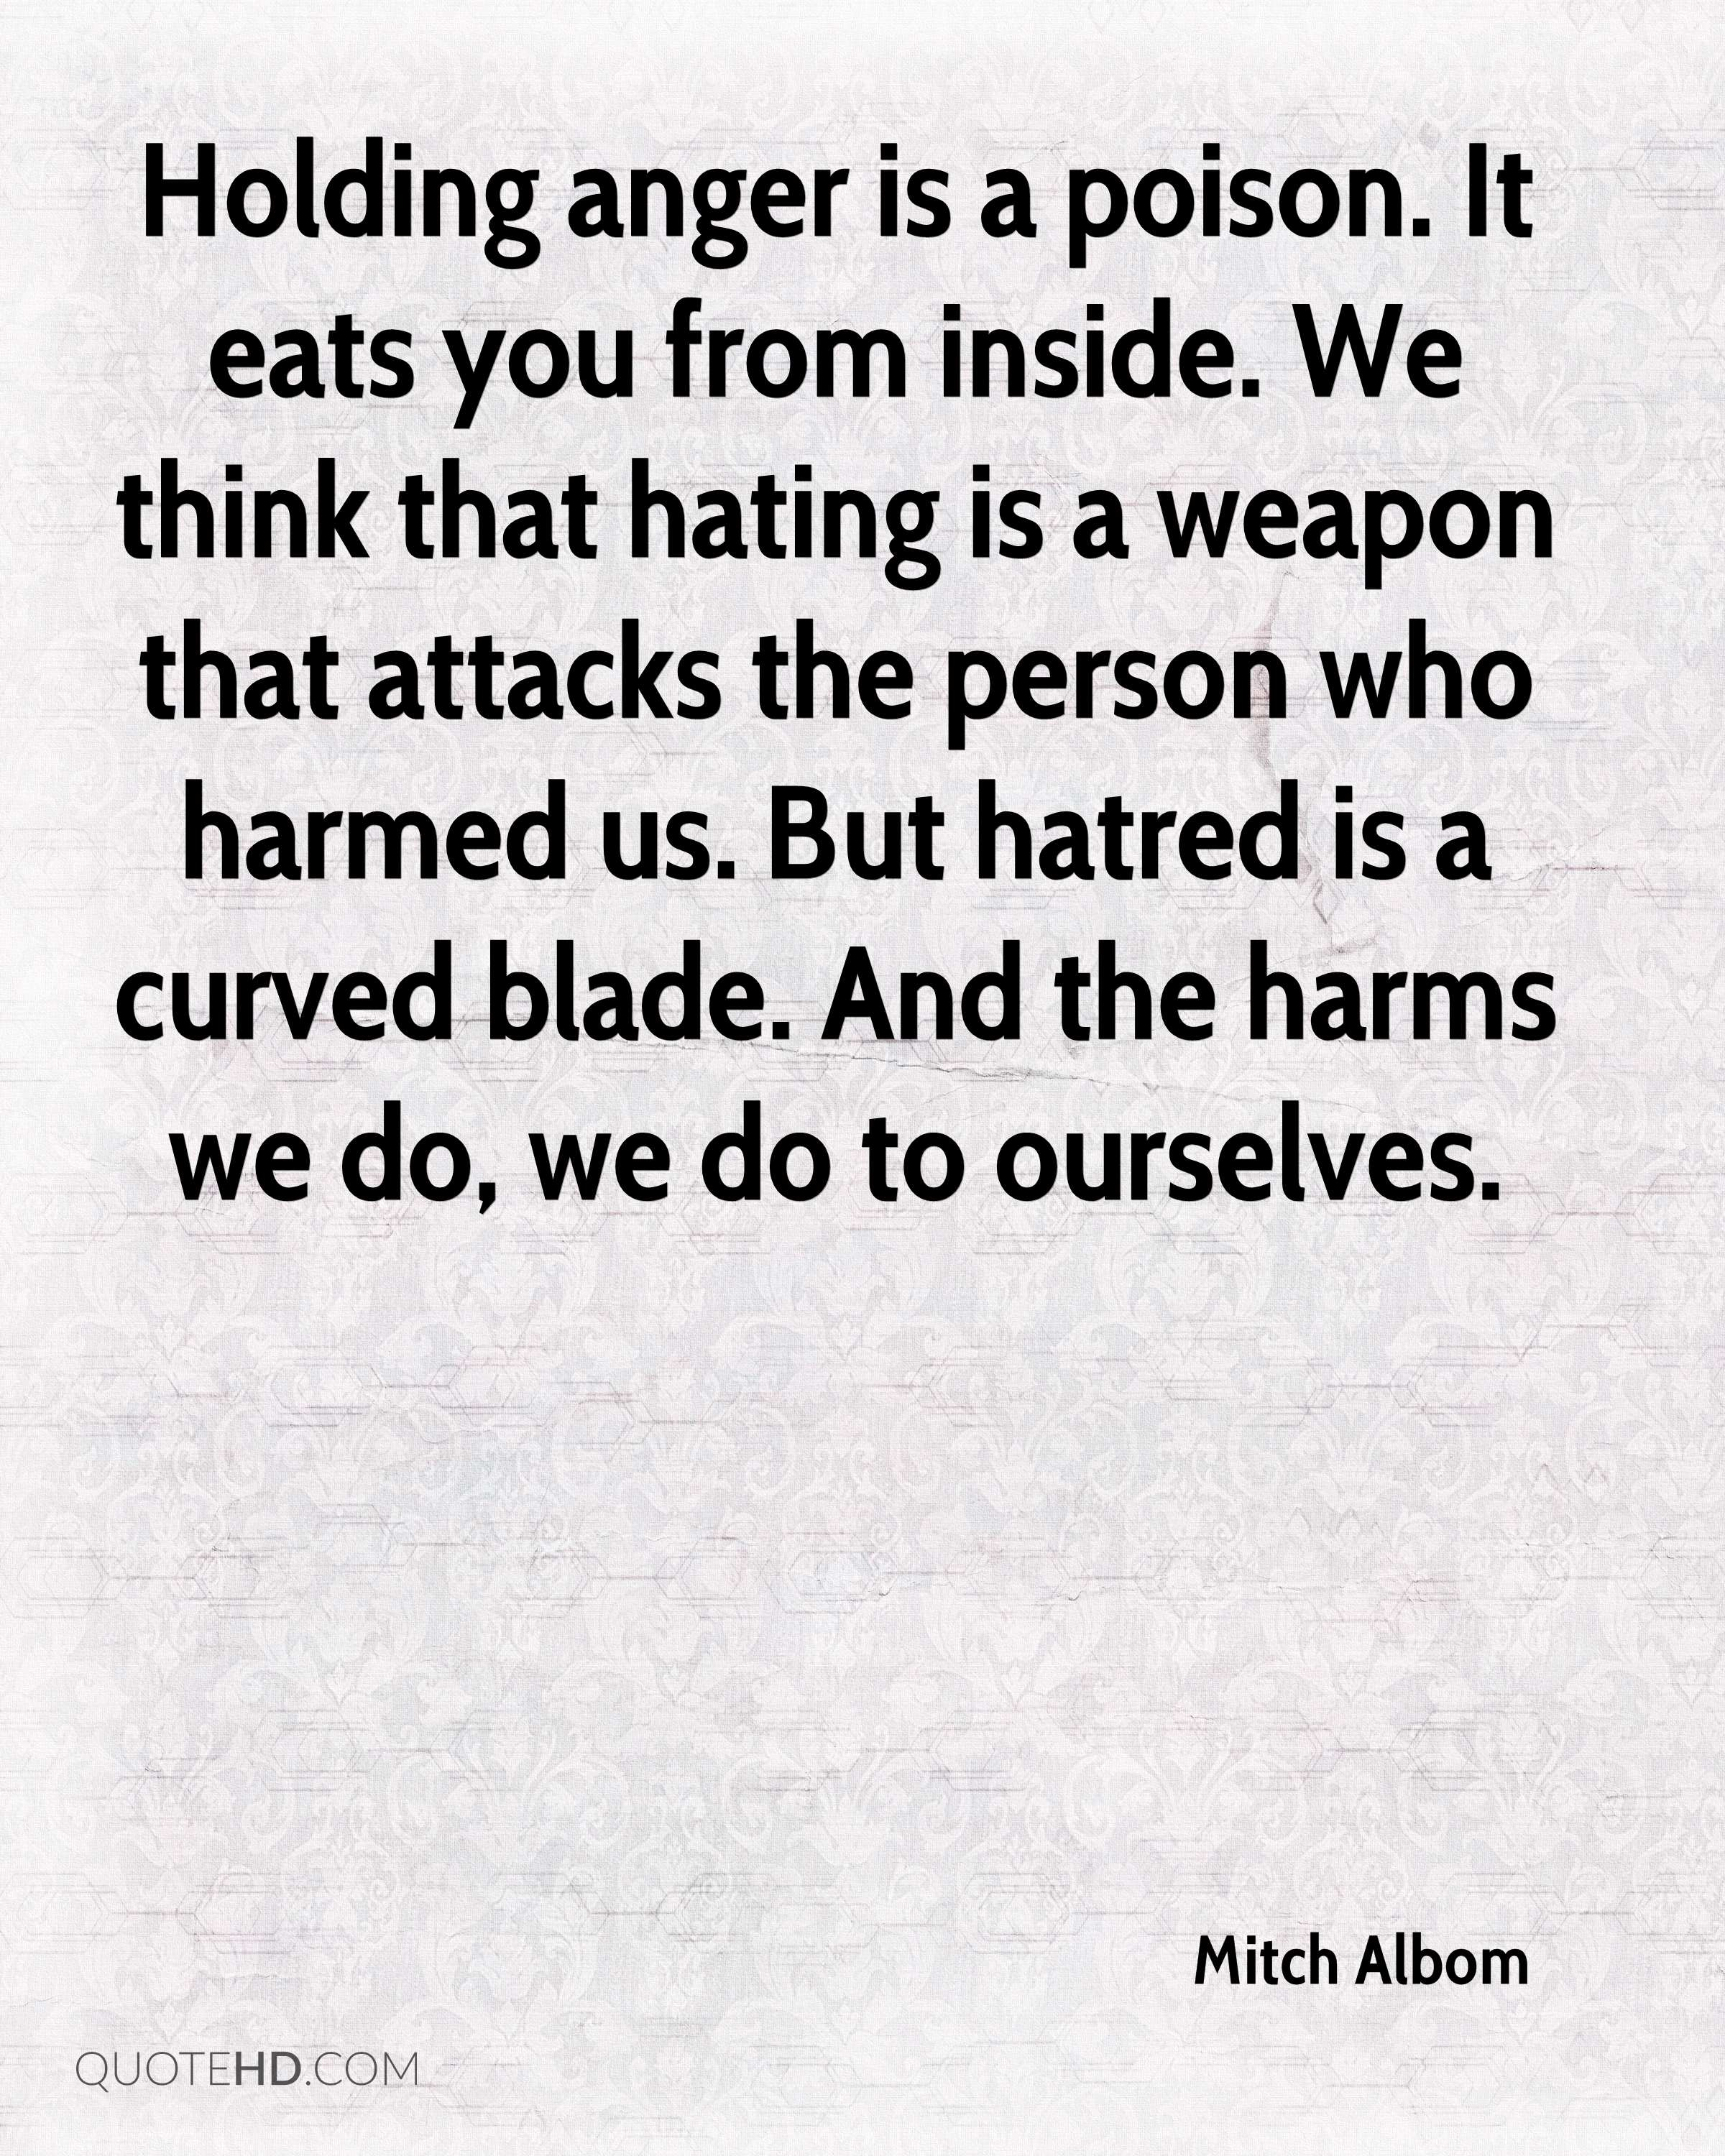 Holding anger is a poison. It eats you from inside. We think that hating is a weapon that attacks the person who harmed us. But hatred is a curved blade. And the harms we do, we do to ourselves.